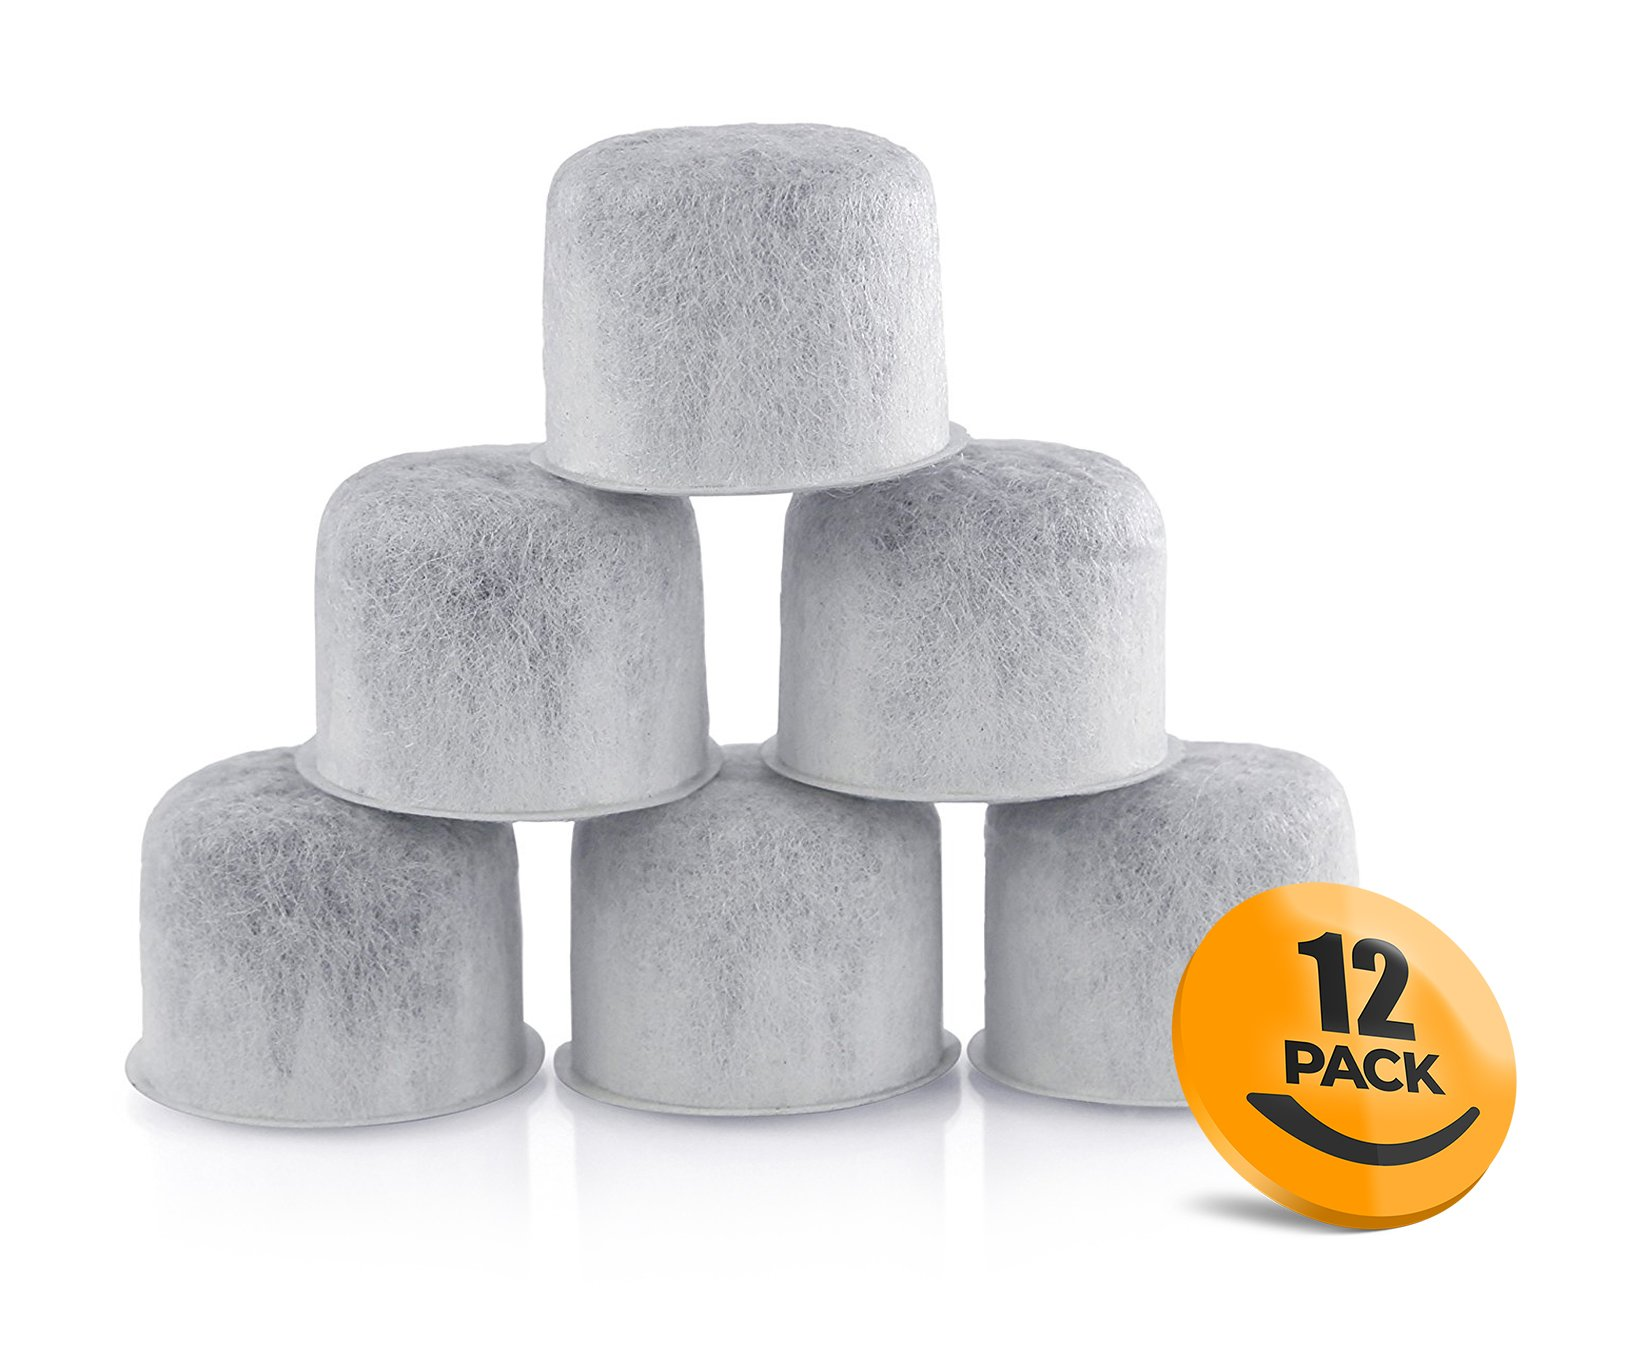 K&J 12 Pack Replacement Capresso Charcoal Water Filters - Replaces 4440.90 Coffee Filters